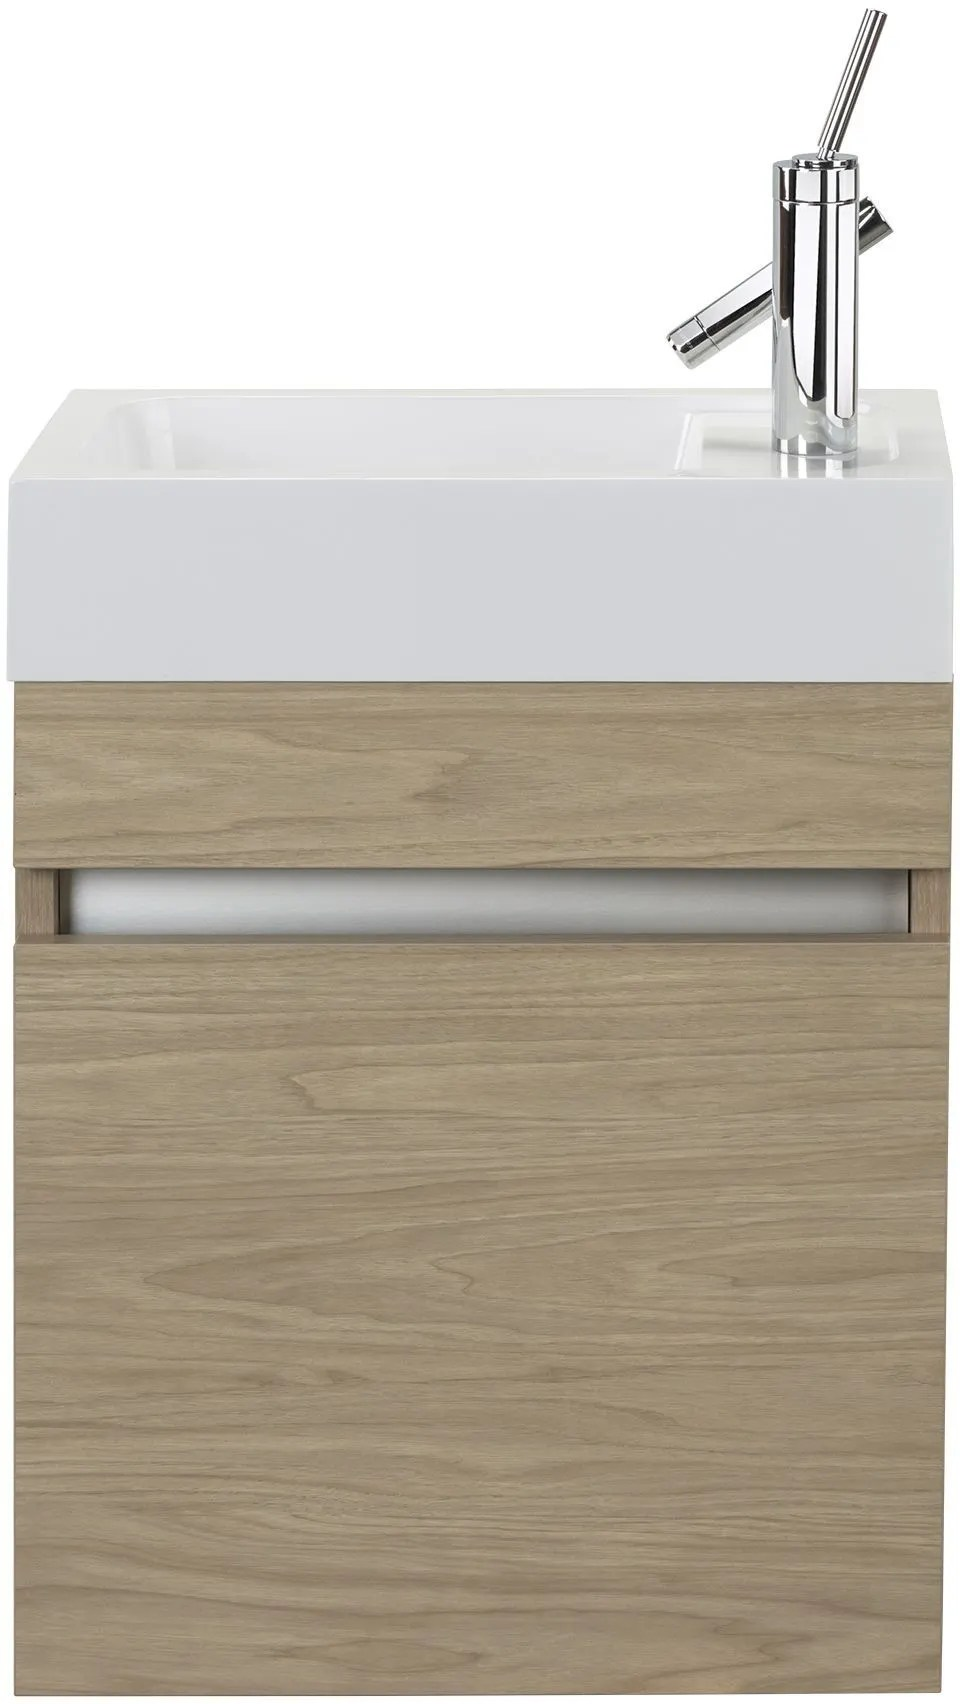 Kitchen Sink For 18 Cabinet Cutler Kitchen And Bath Fvpicc18